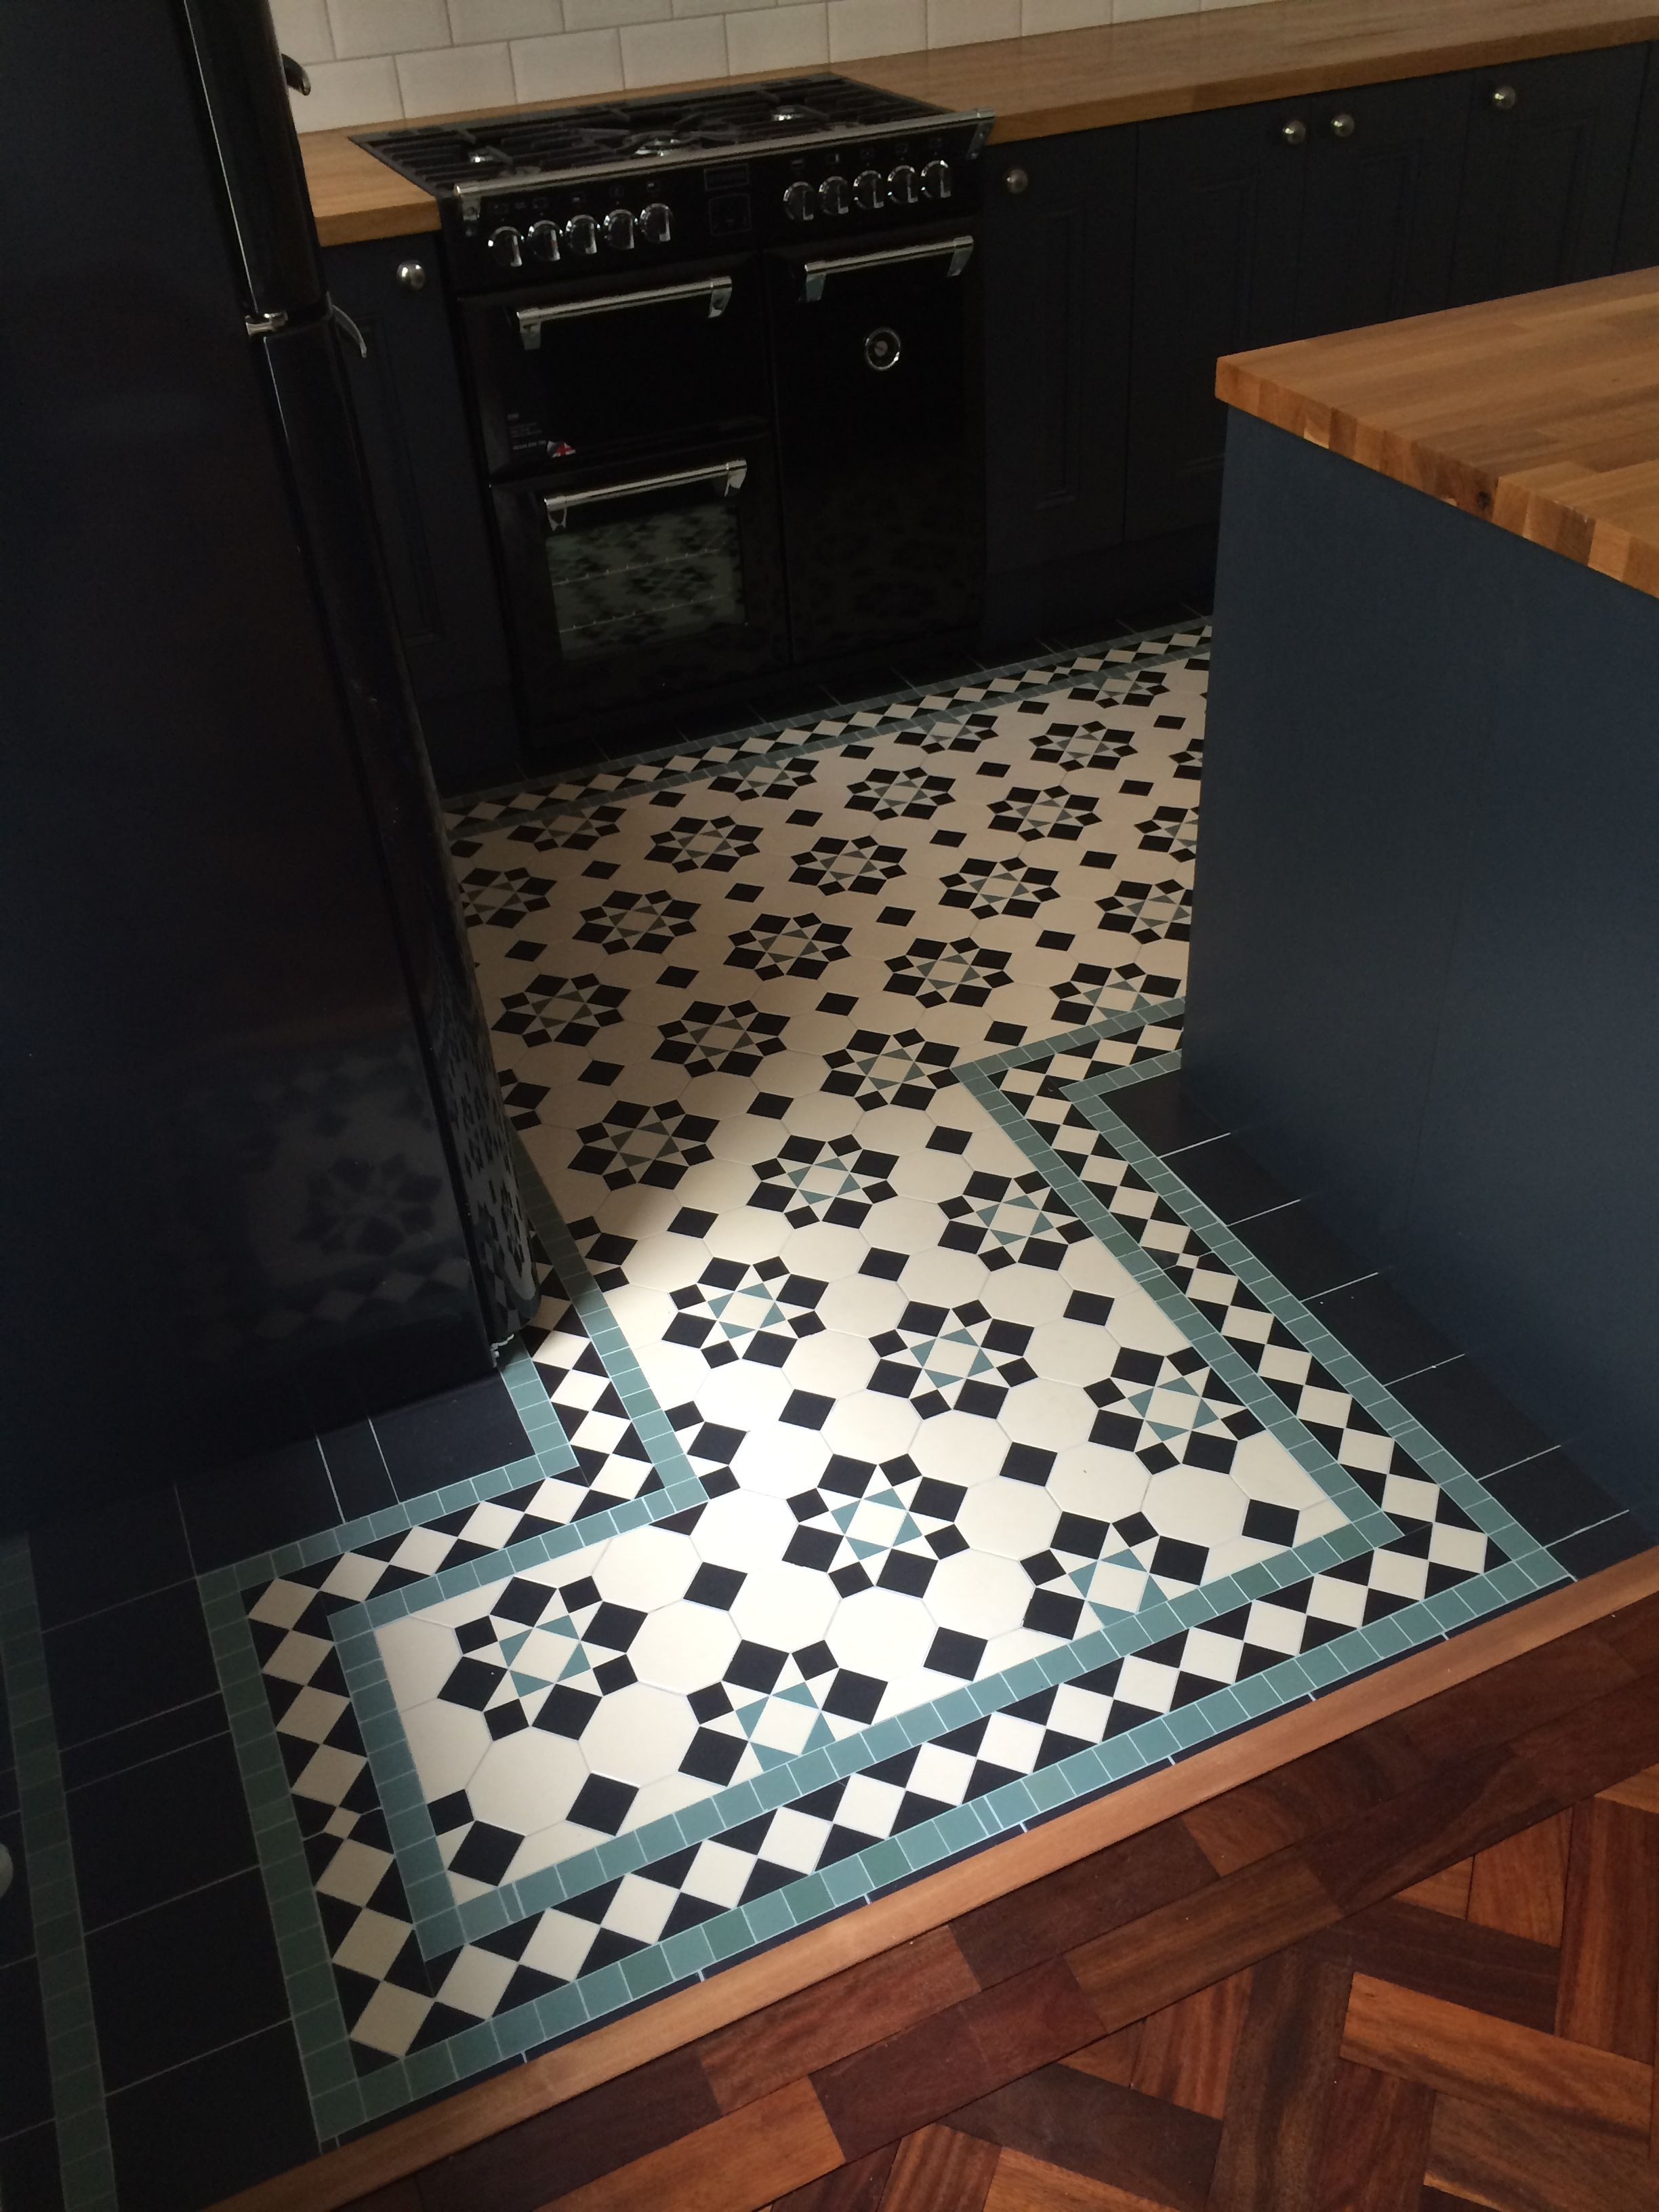 London Mosaic Tiled Victorian Floor Modern Kitchen Traditional Floor Contact Us For More Informati In 2020 Mosaic Tile Kitchen Kitchen Floor Tile Victorian Tiles